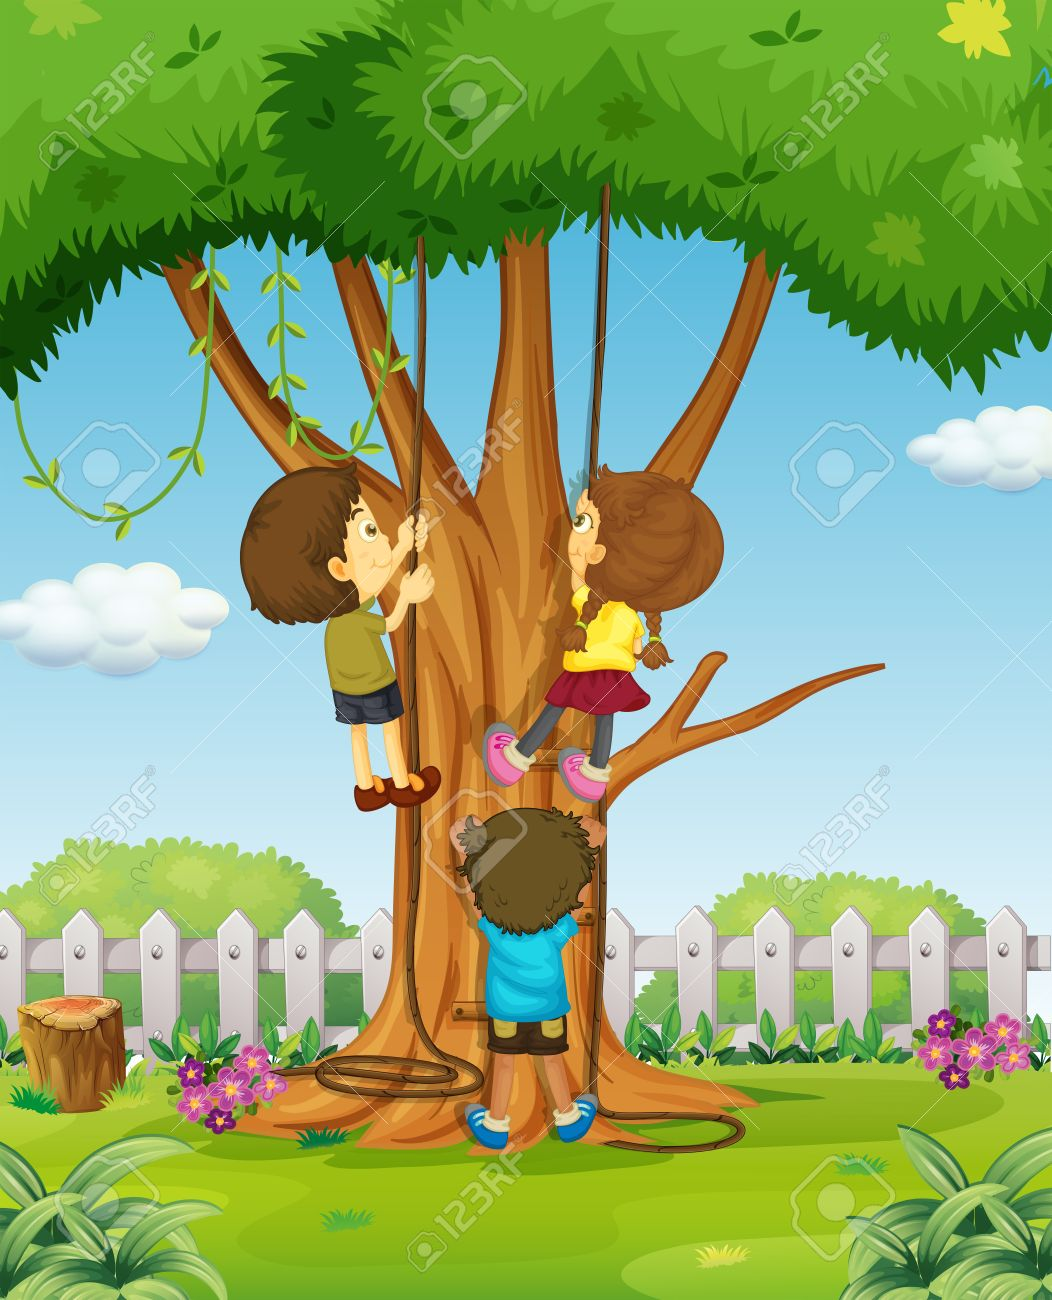 Boys and girl climbing up the tree illustration.